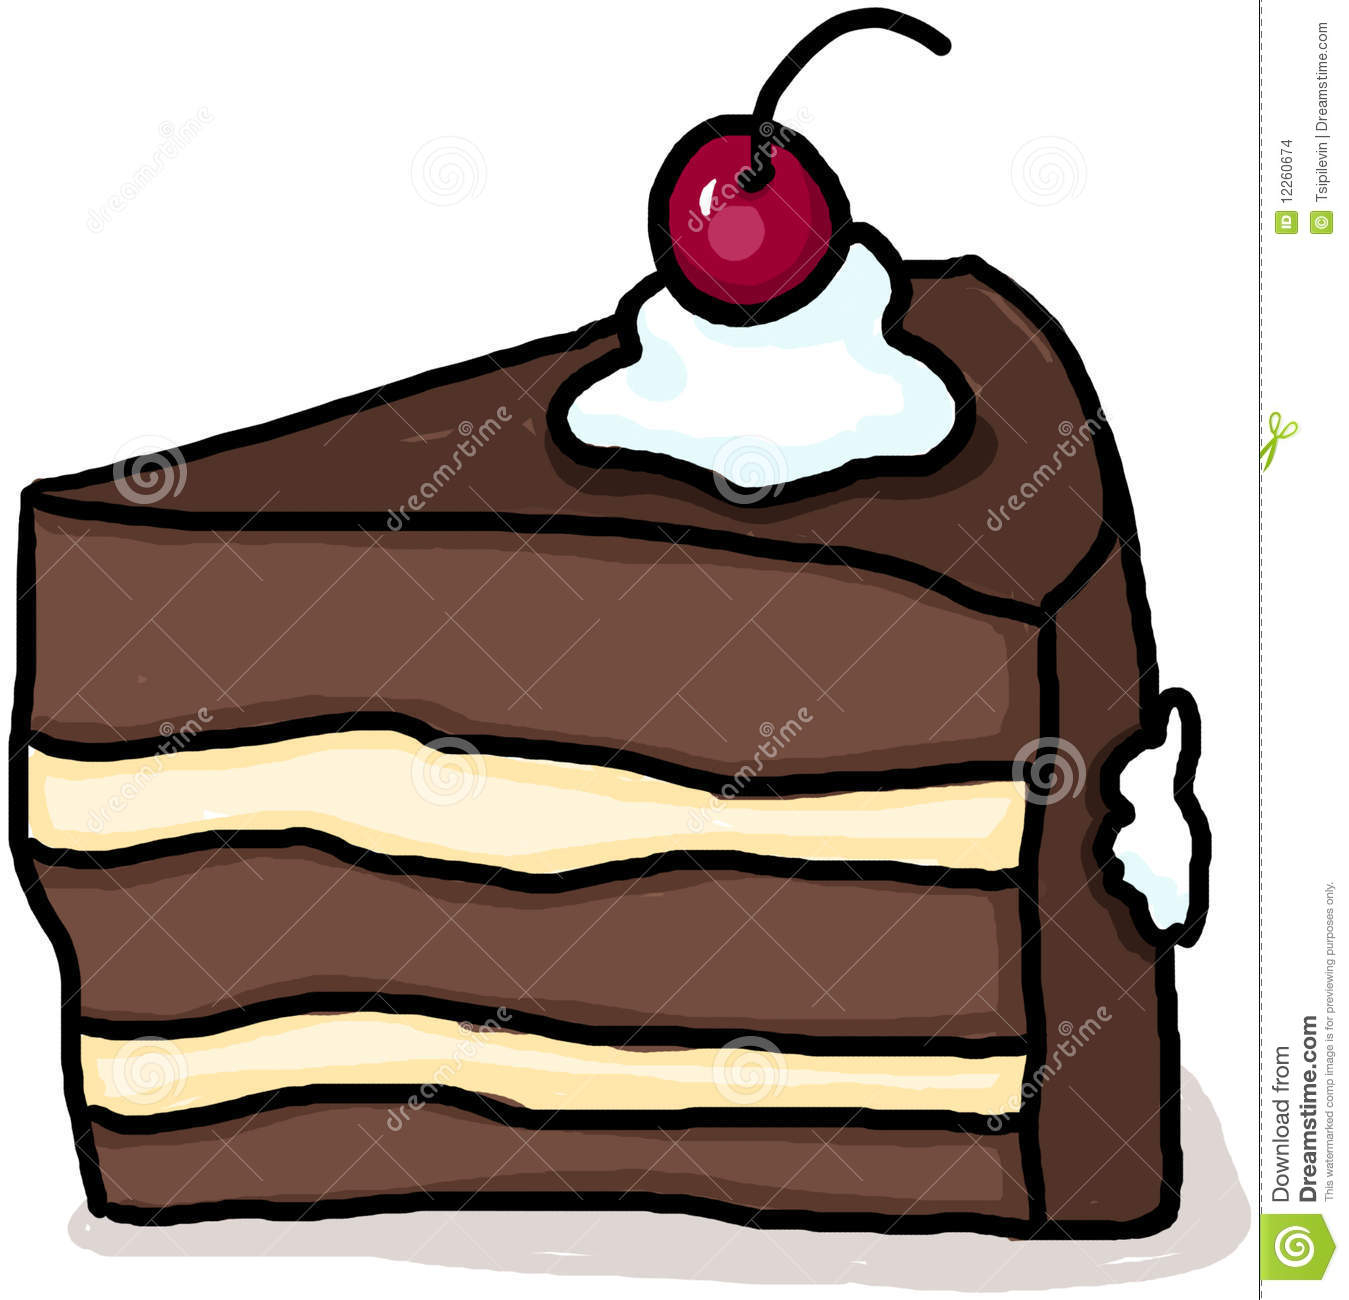 1349x1300 Slice Of Cake Drawing Cake Illustration Piece Of Cake Cartoon